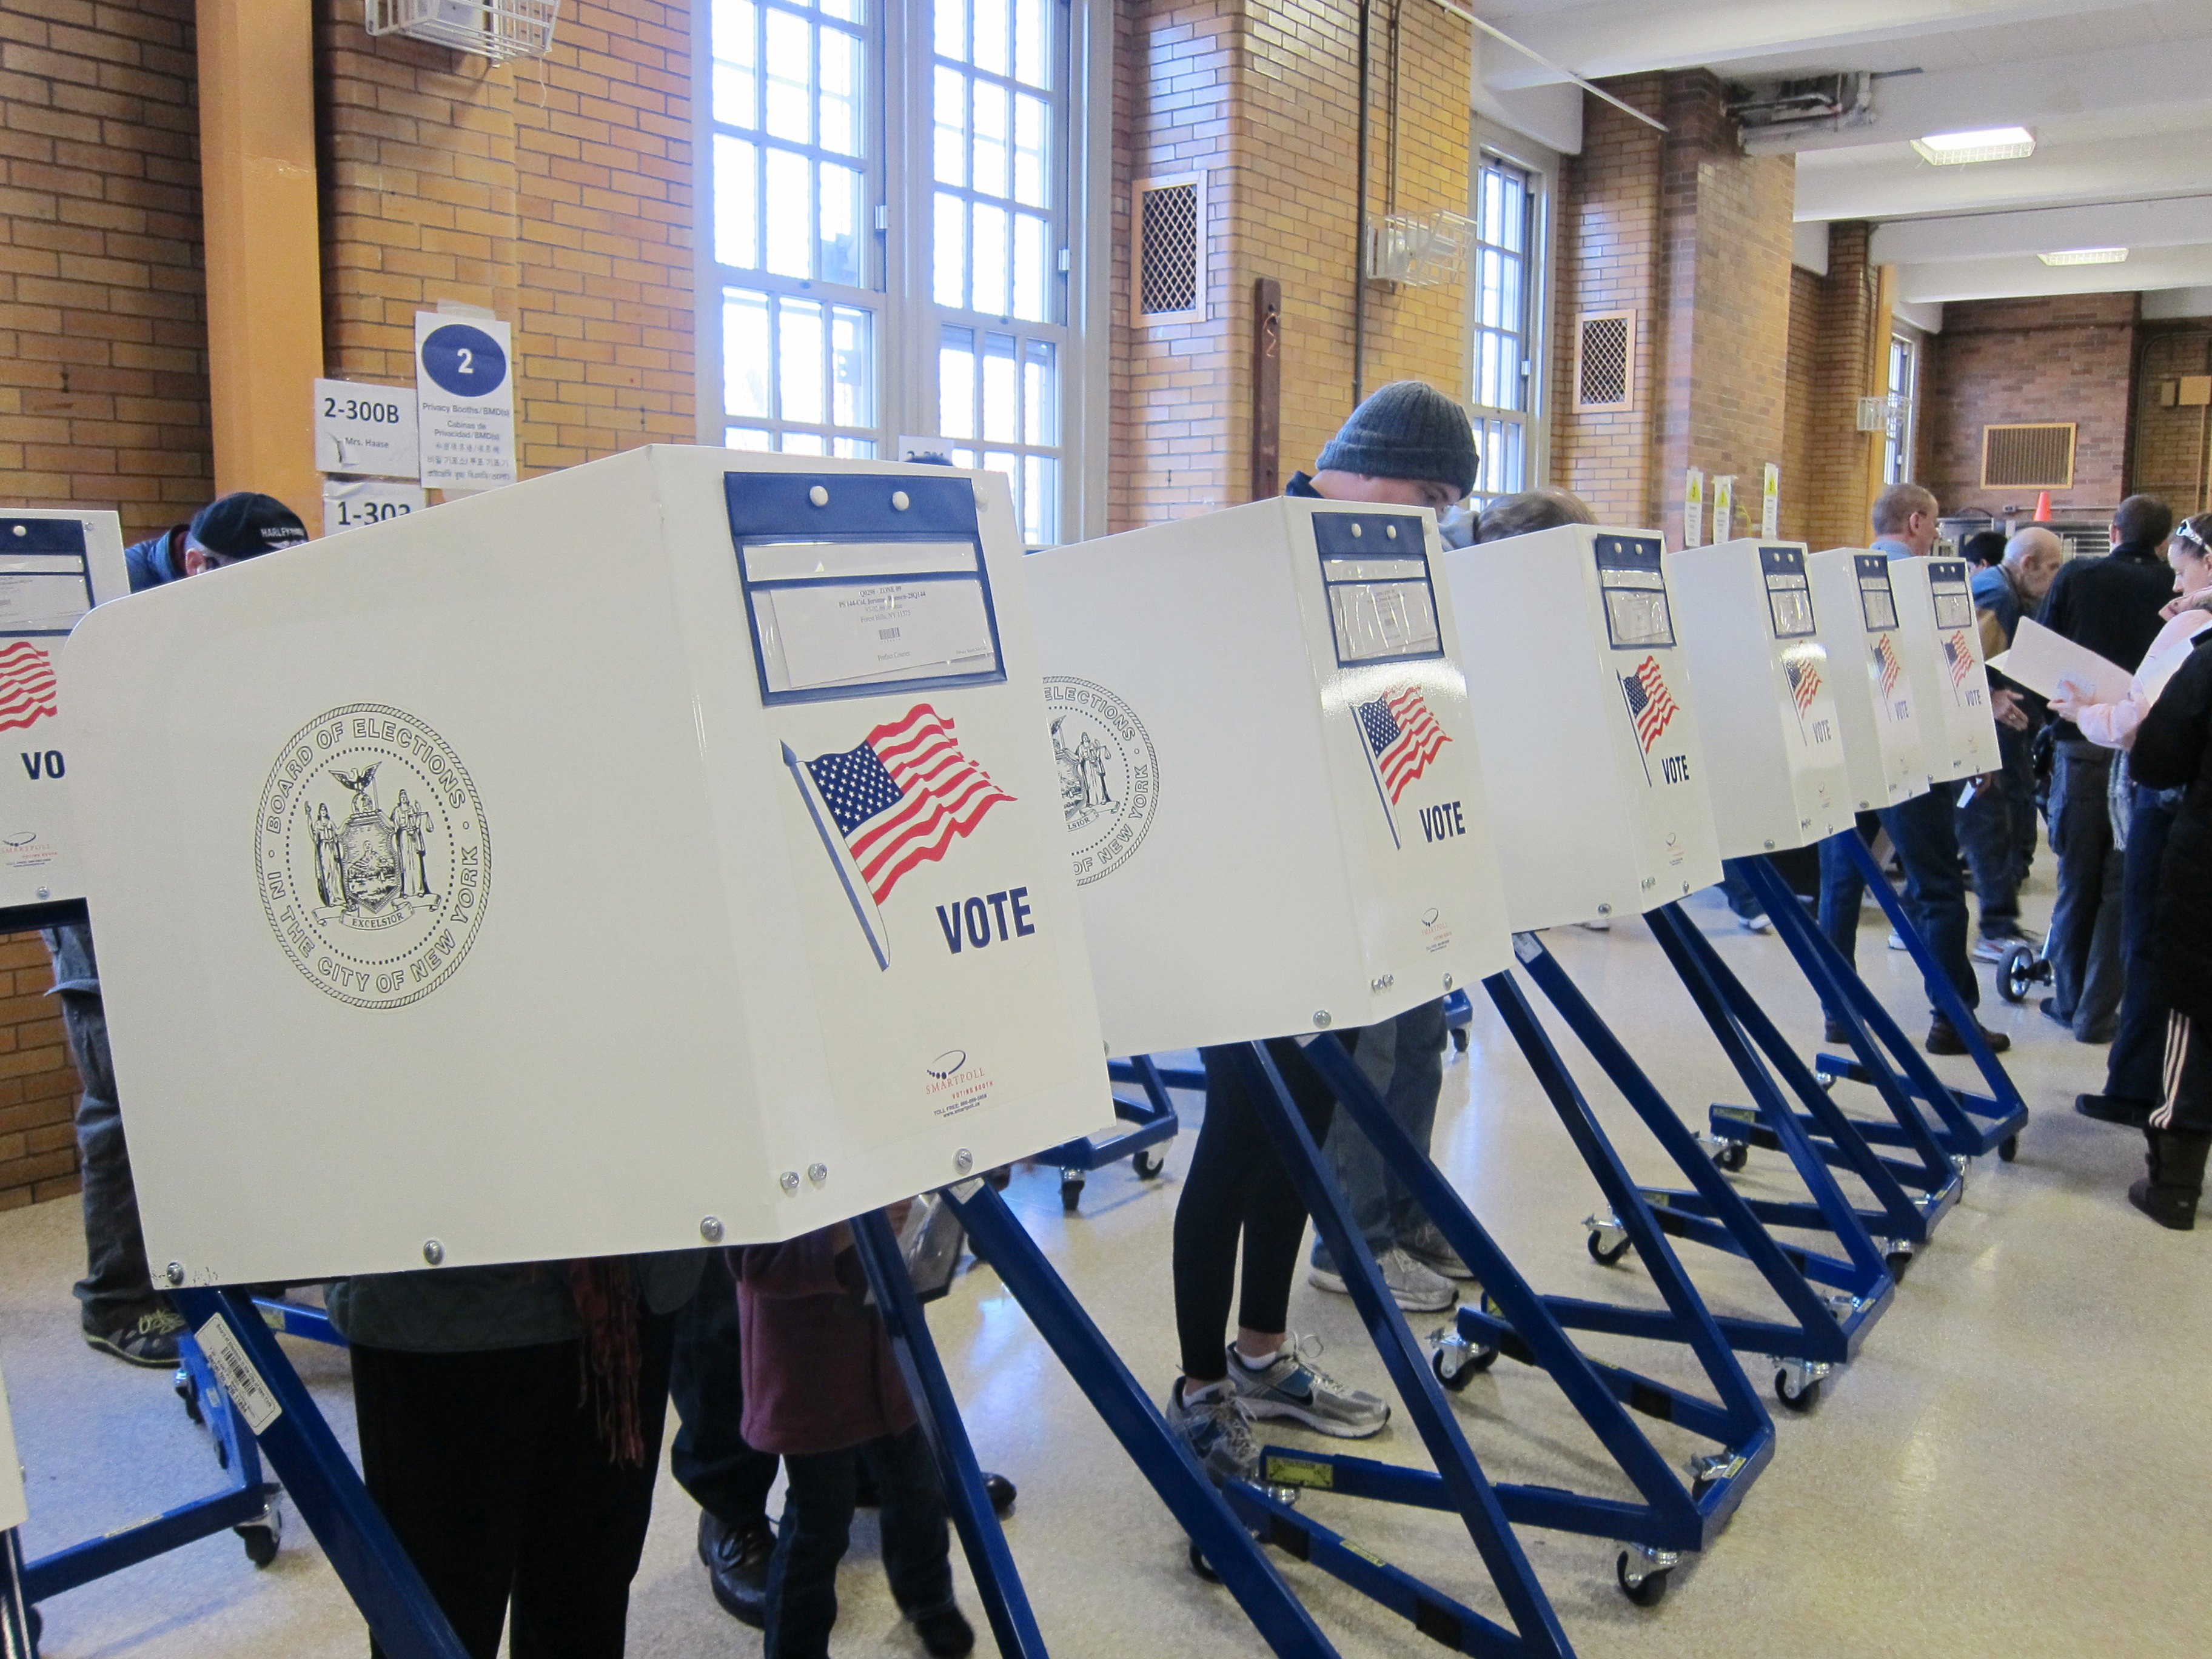 New York voting booths